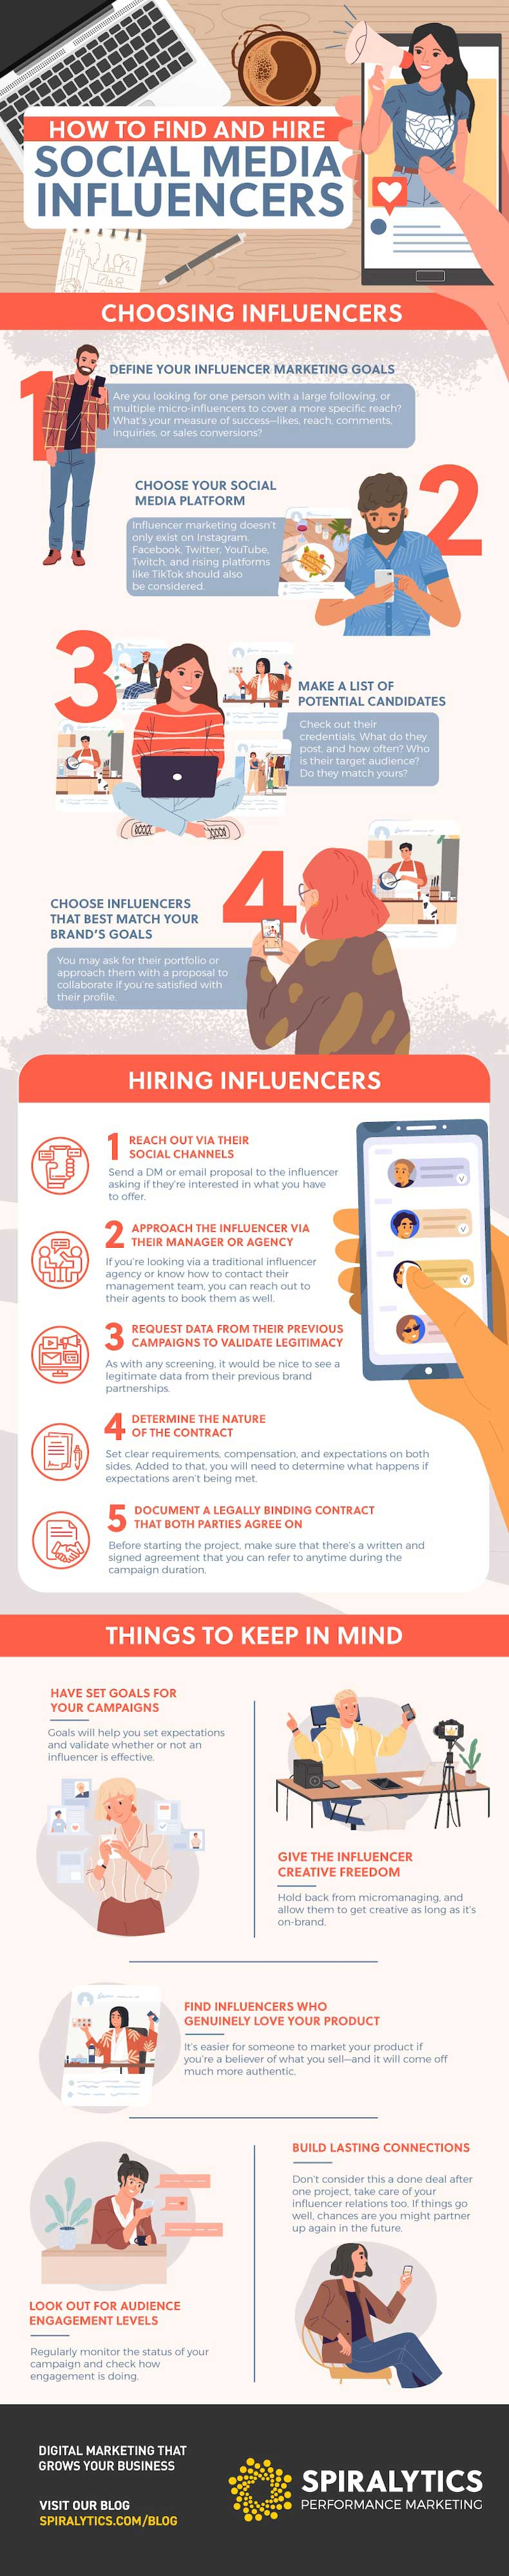 Hire Social Media Influencers Infographic